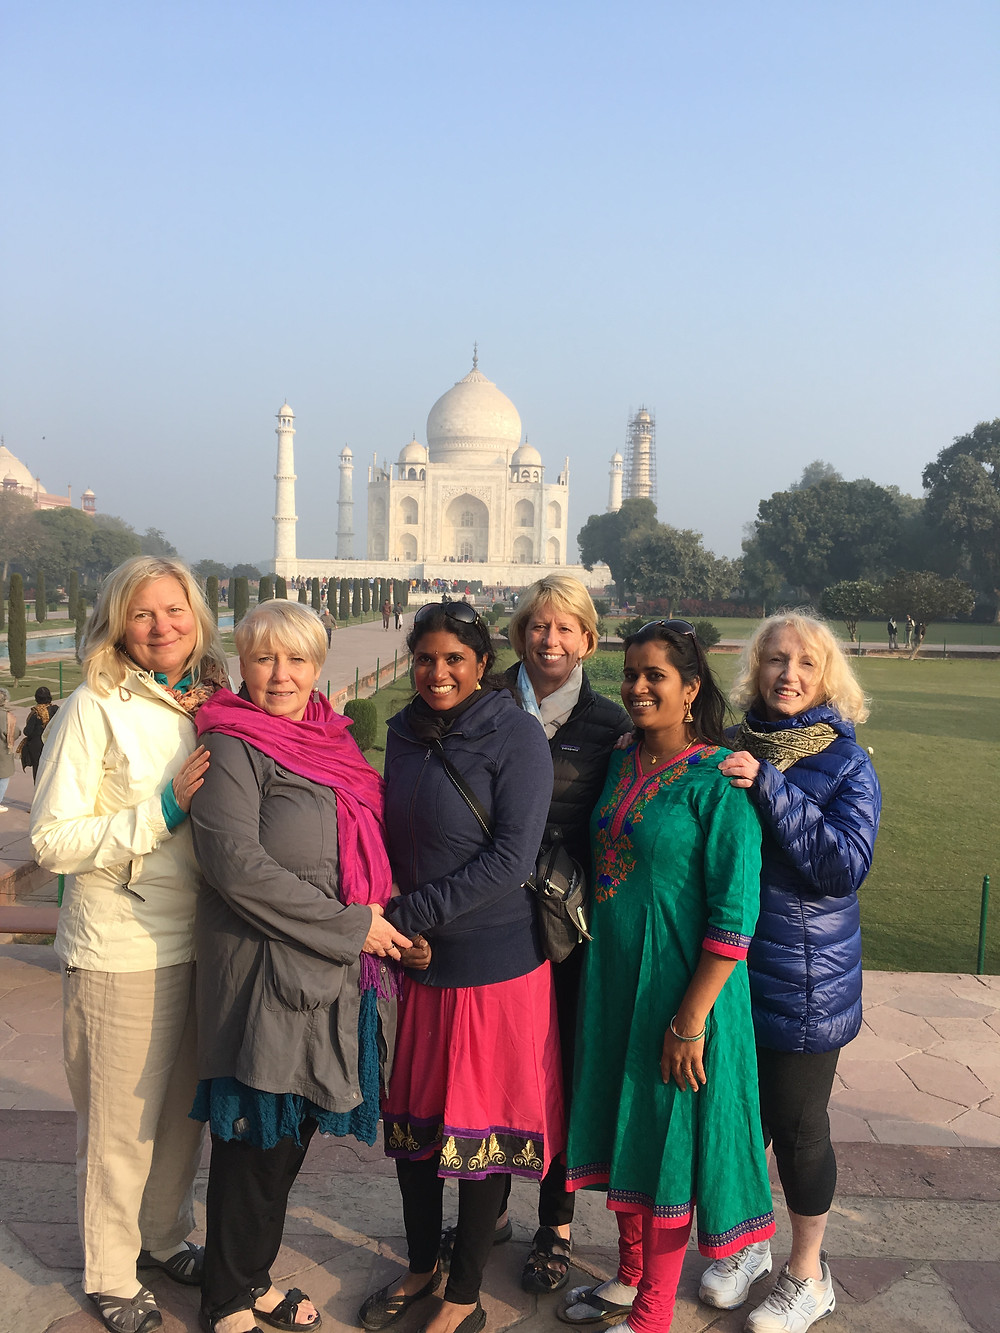 Very cold sunrise at the Taj Mahal